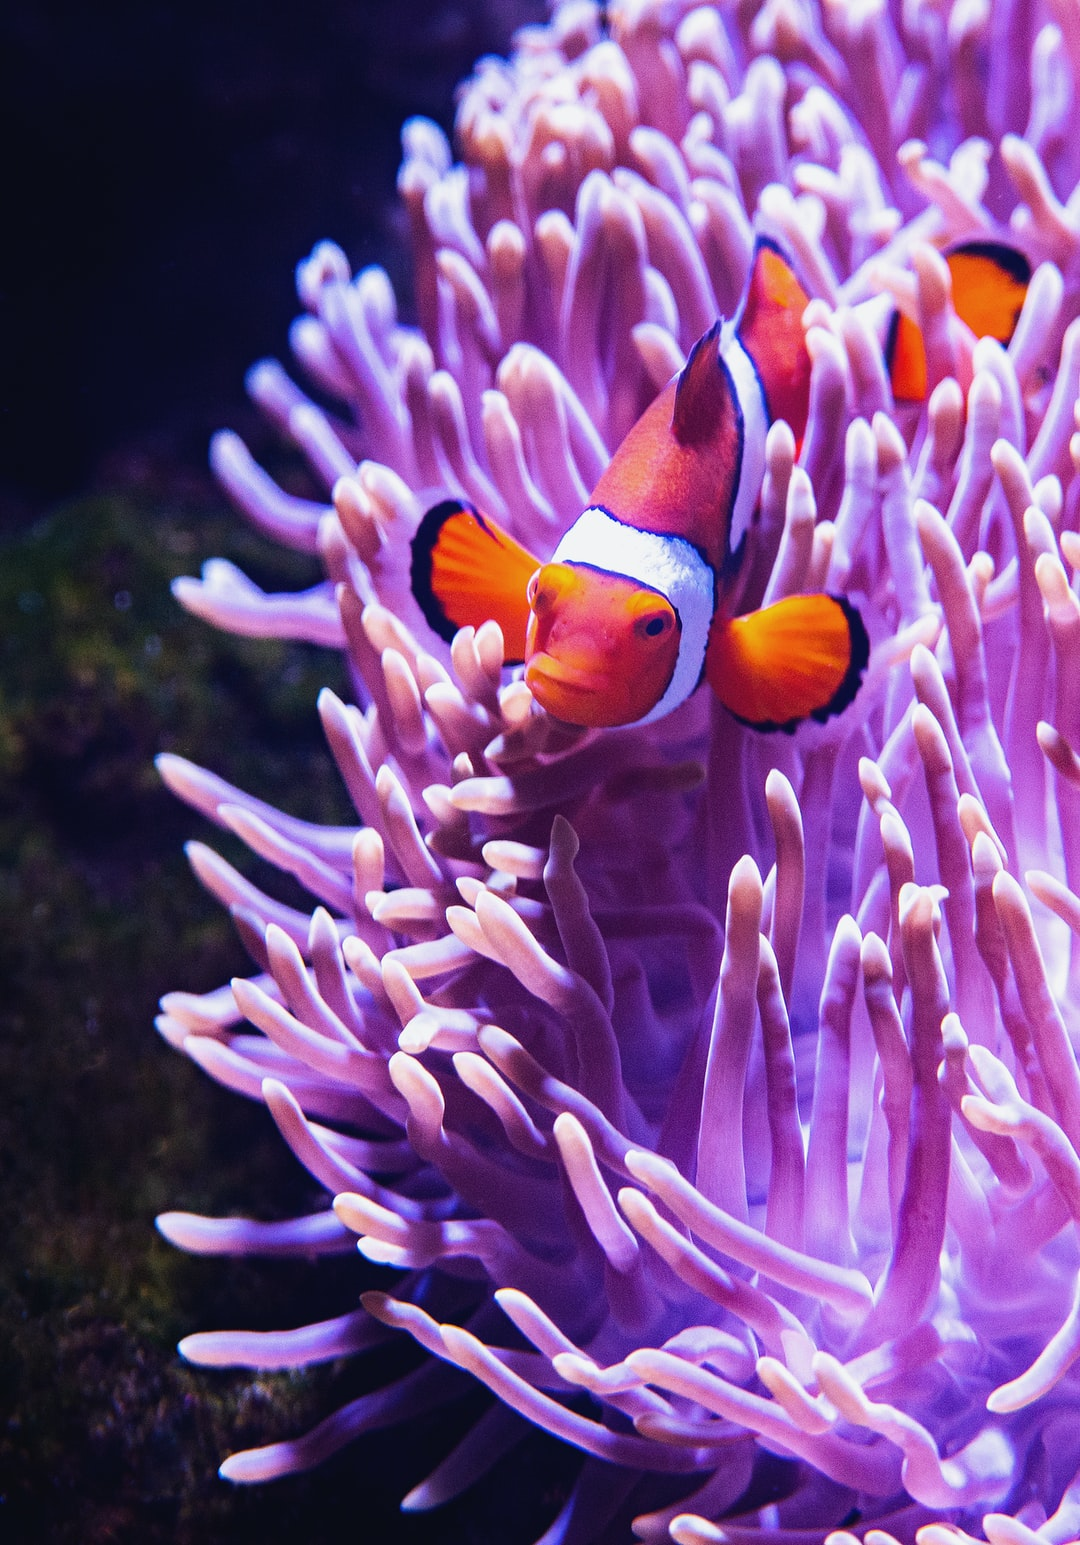 The Clown Anemonefish is the type of fish in the film Finding Nemo. This photo shows typical behaviour where they live in and find protection in stinging sea anemones.